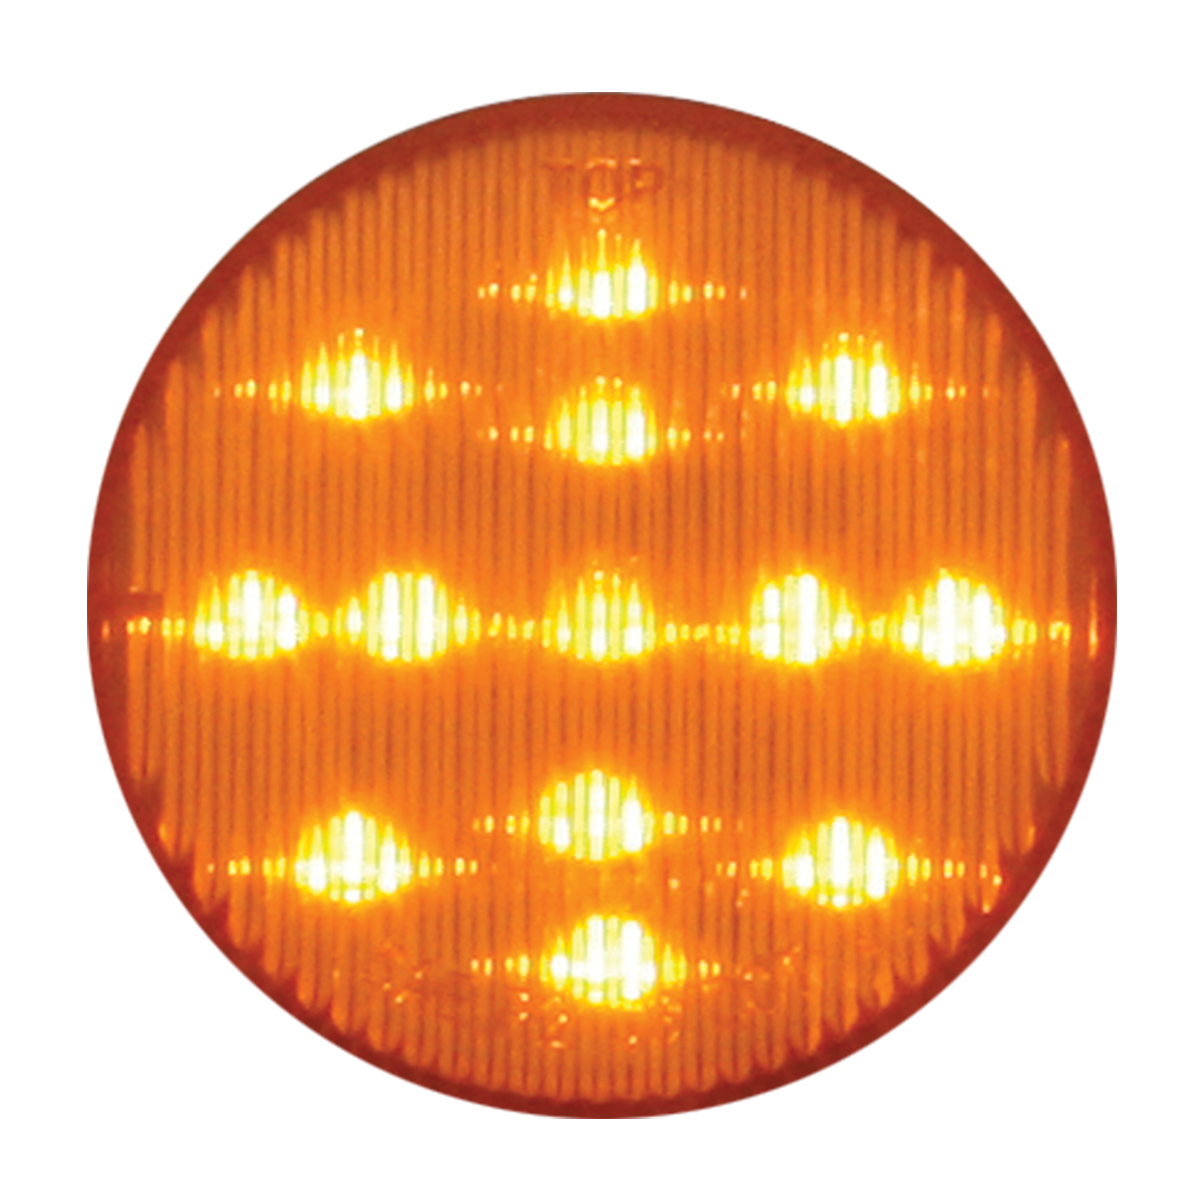 "#79310 2 ½"" Round LED Flat Amber/Amber Light"